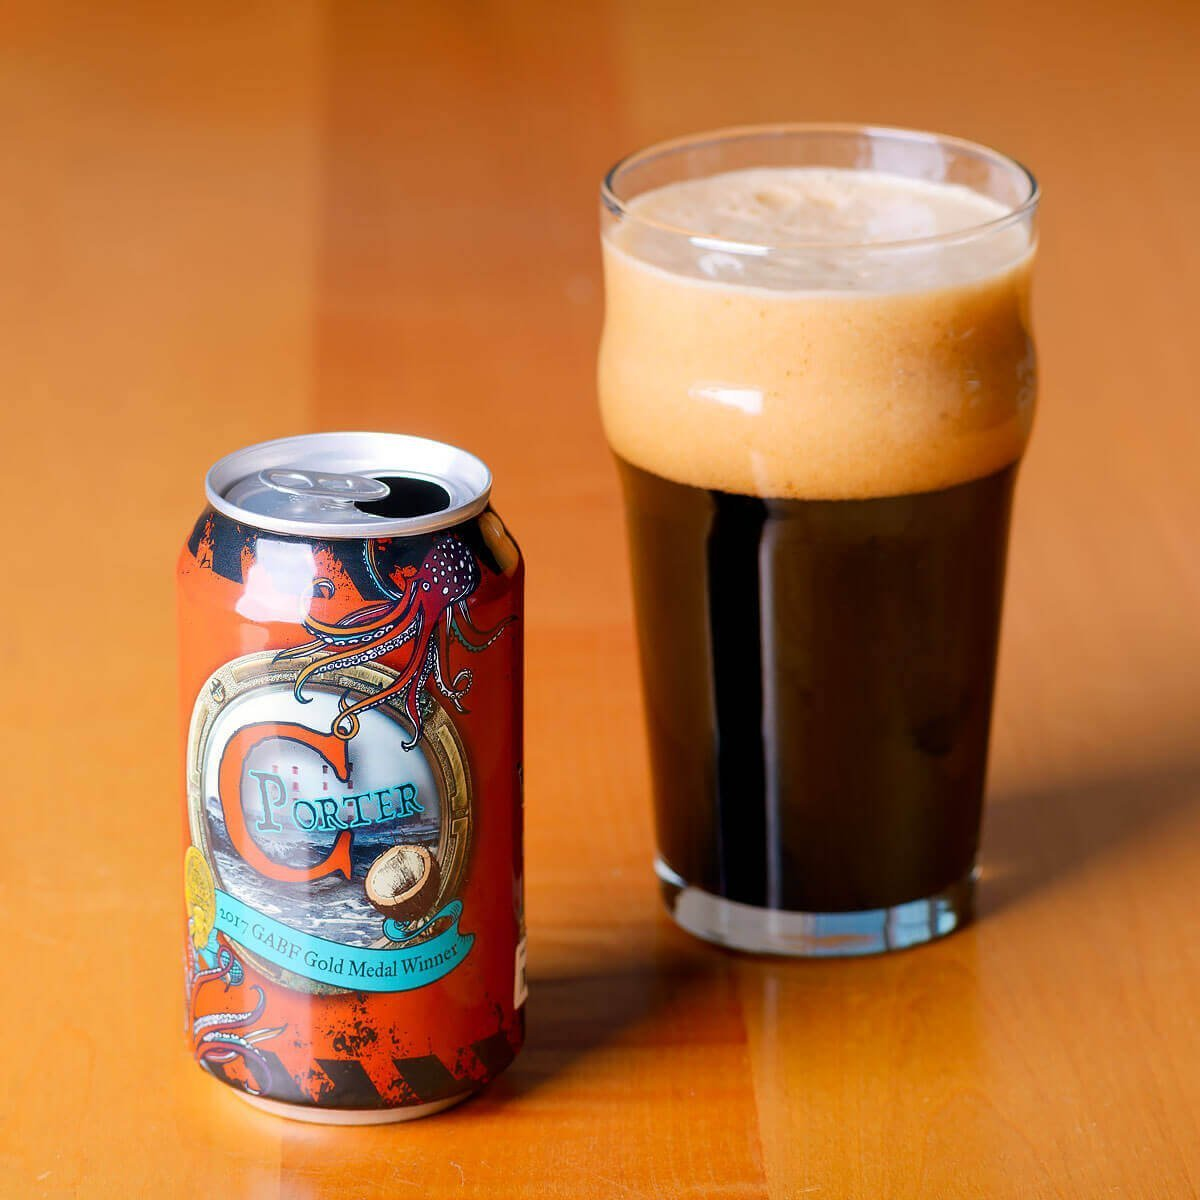 C Porter is an award-winning American Porter brewed by LauderAle that wonderfully balances coffee roast with sweet coconut, vanilla, and chocolate.